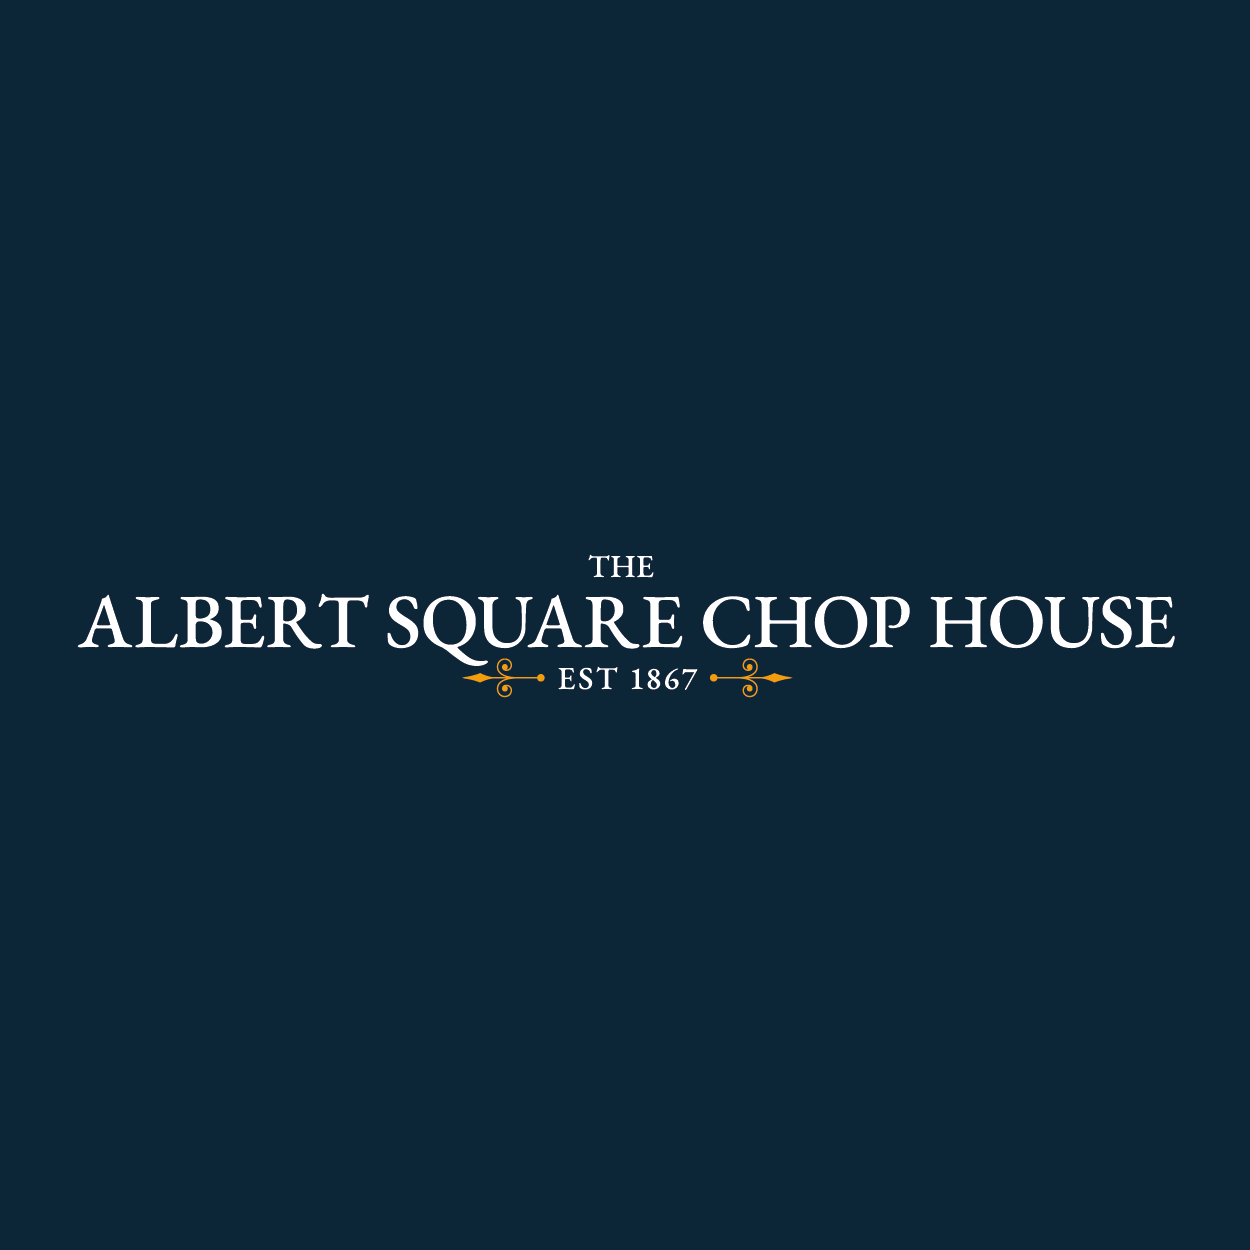 The Albert Square Chop House Manchester